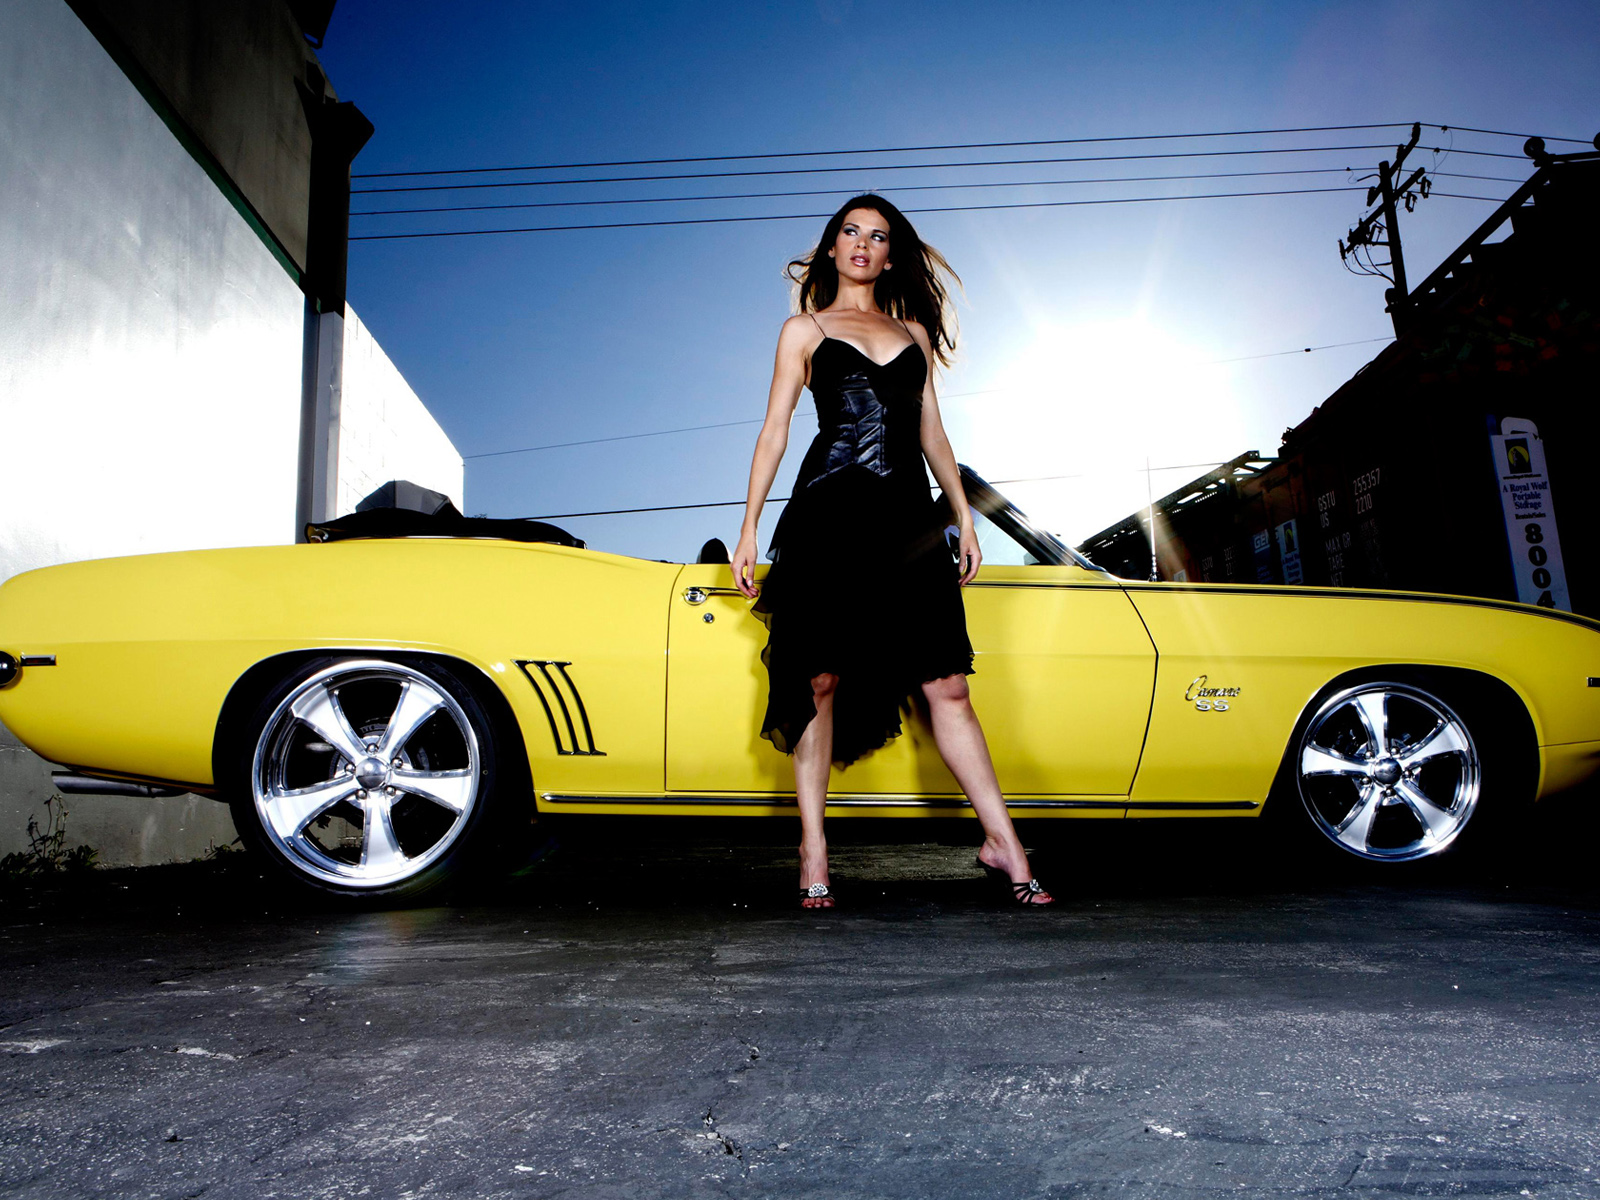 Girls with Cars 106